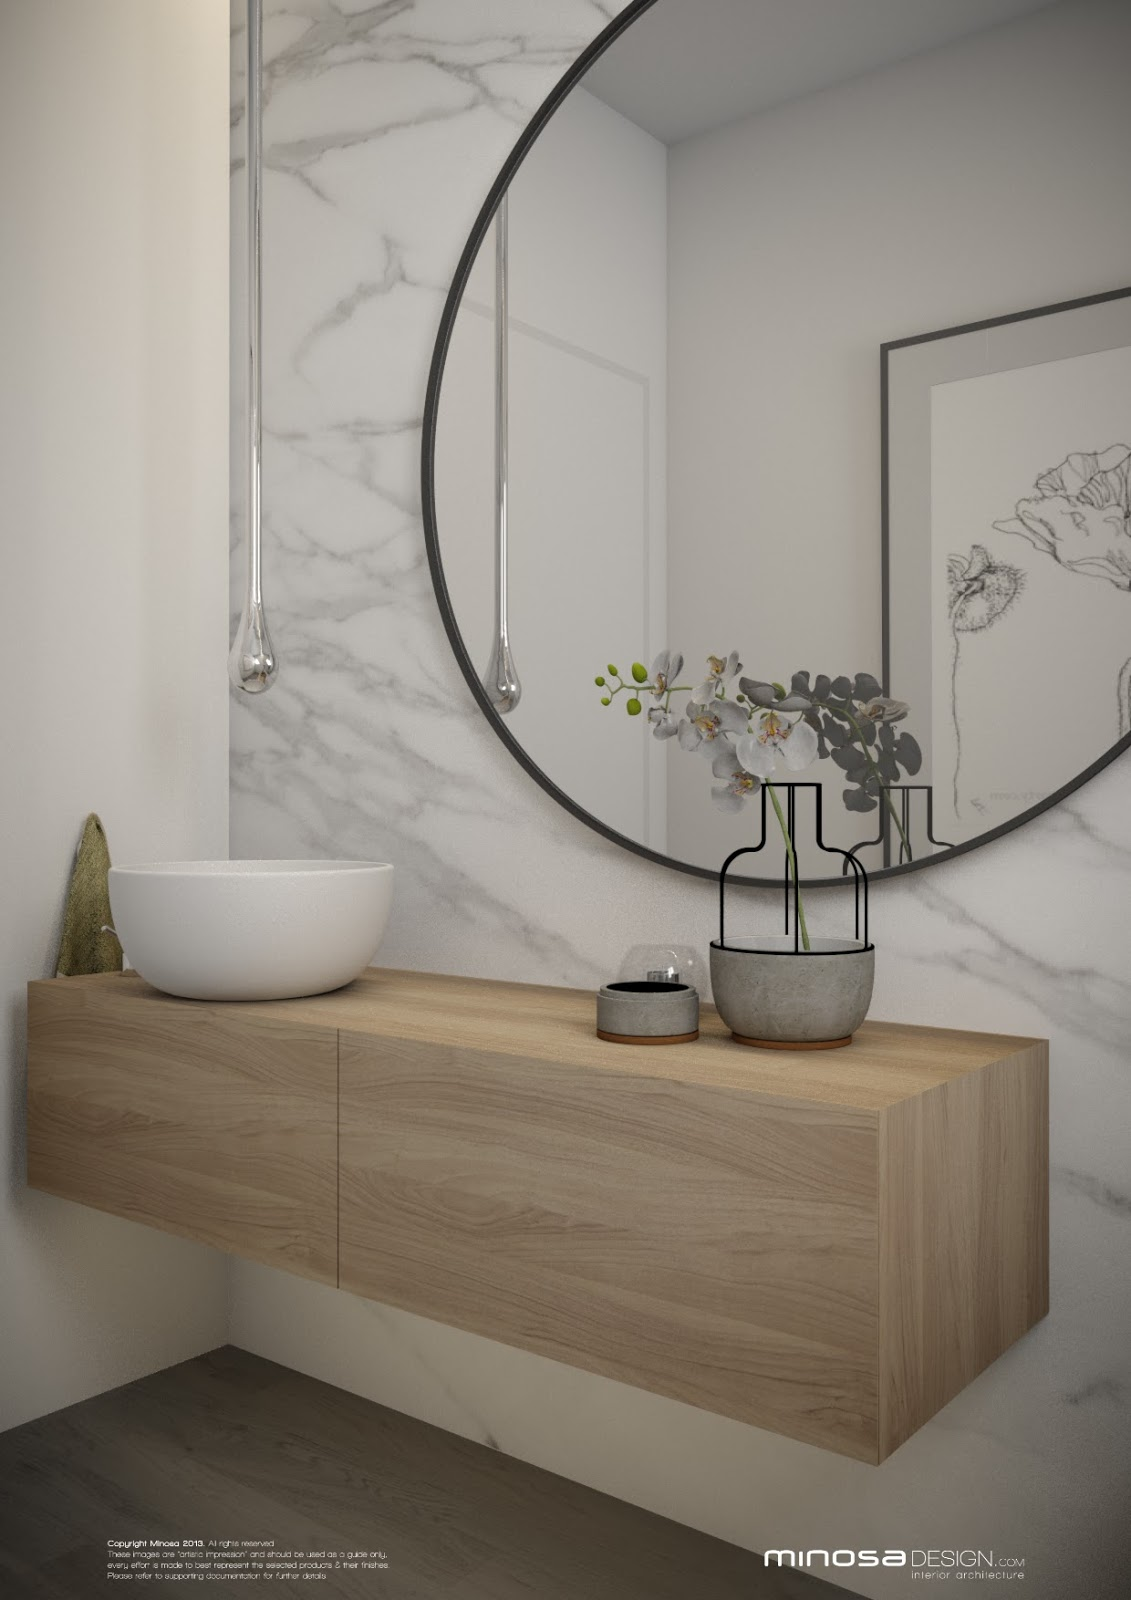 Minosa: Powder Room - The WOW bathroom